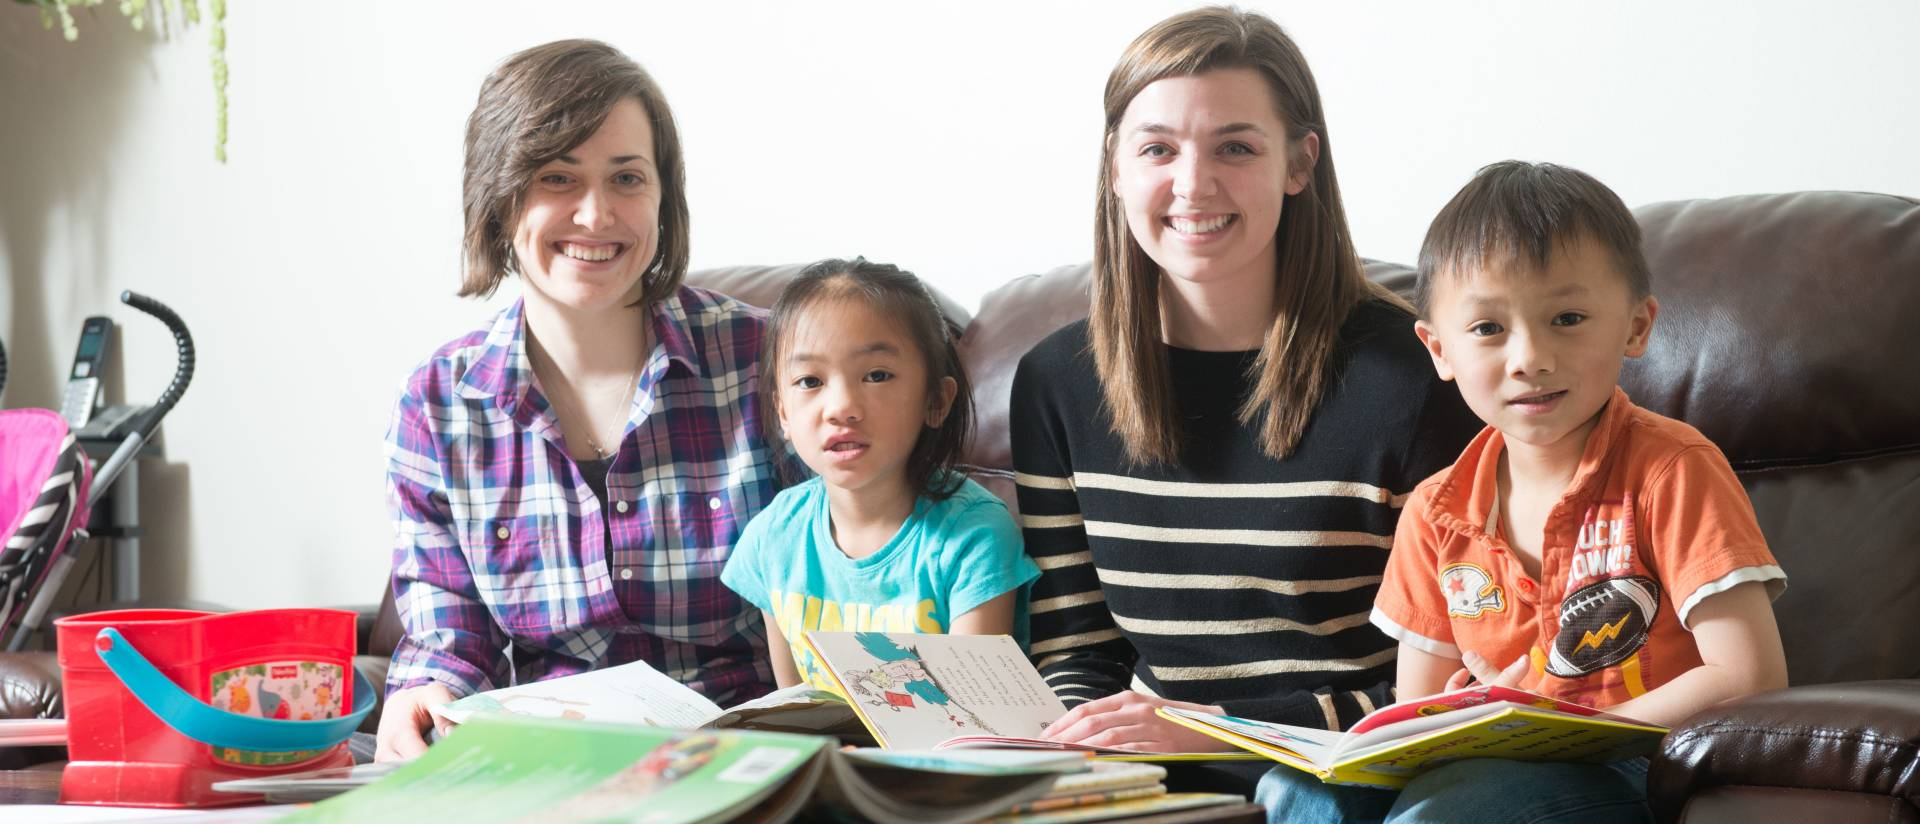 UW-Eau Claire students Jeannie LaFavor, left, and Shannon Harris, right, spend time with their reading partners.